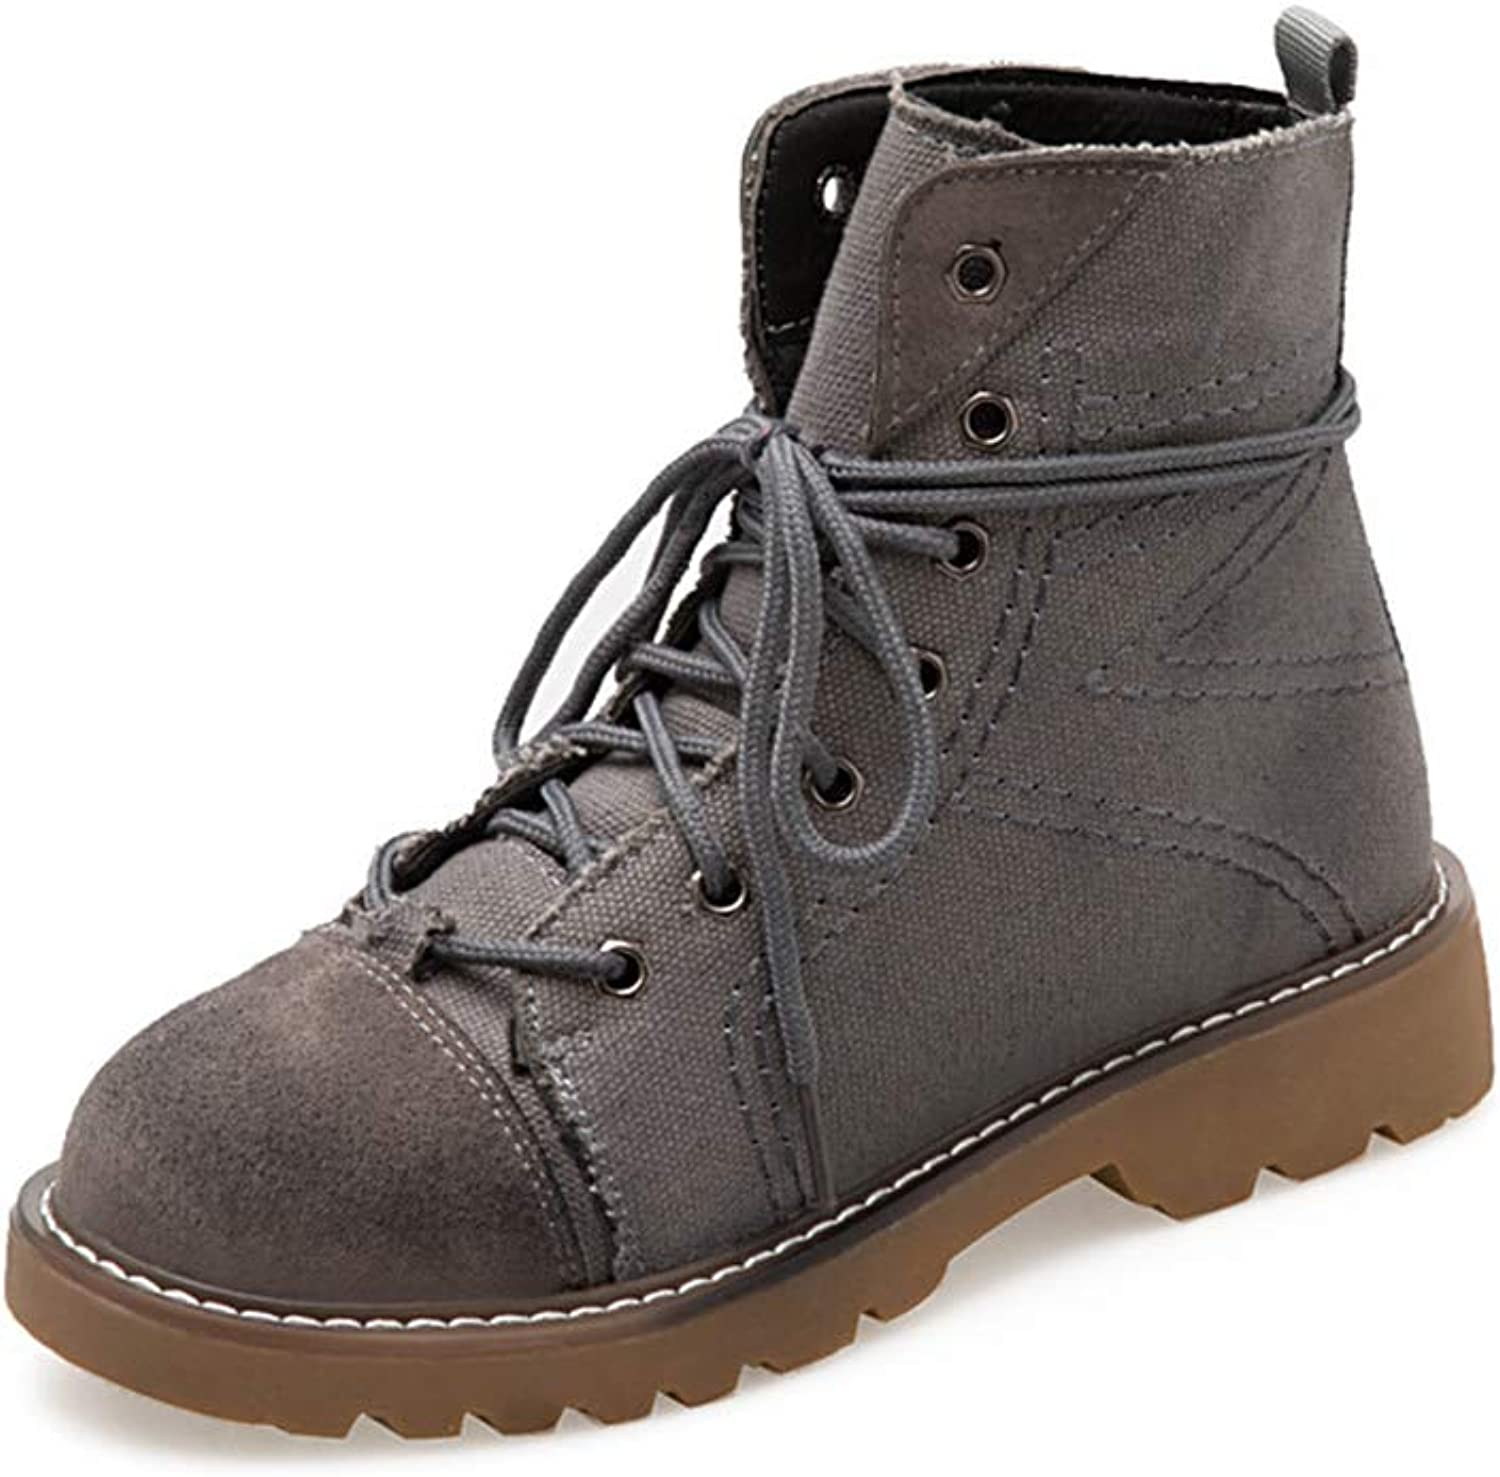 Retro Martin Boots for Women, Fashion Round Toe Ankle Boots, Lace-up Booties, Casual Flat shoes